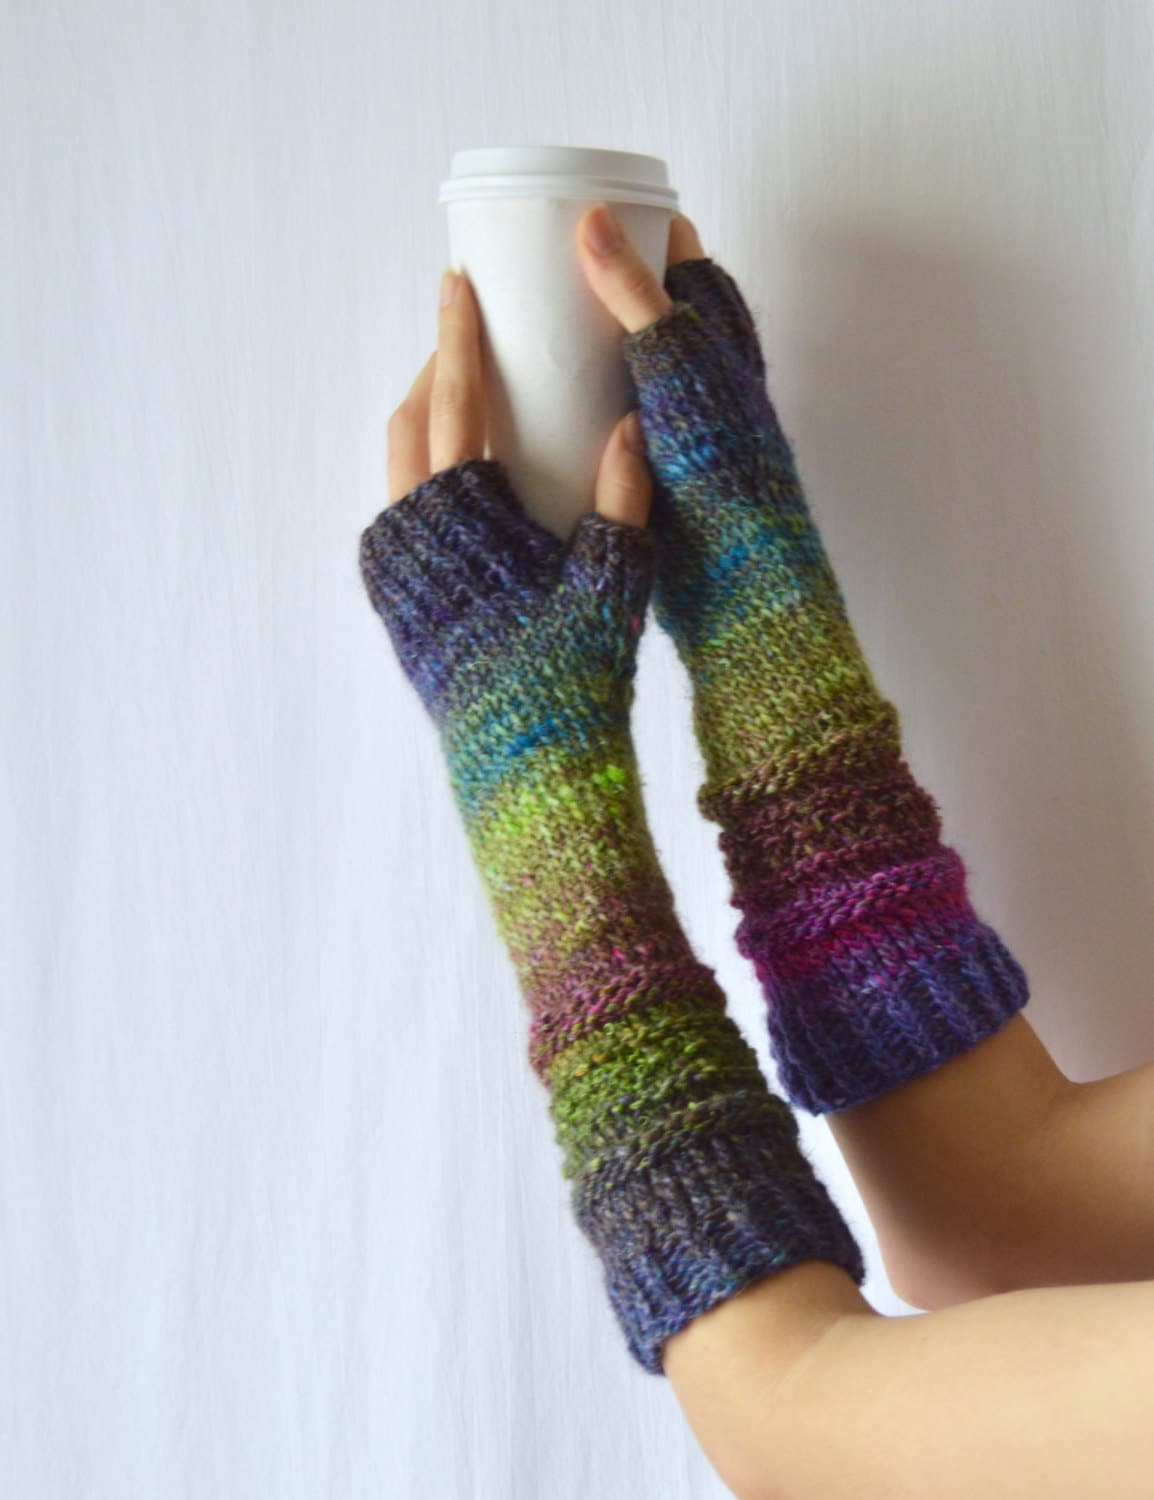 Long Arm Warmers Knitting Pattern : Knitted Arm Warmers Long Silk Hand Warmers Purple Texting